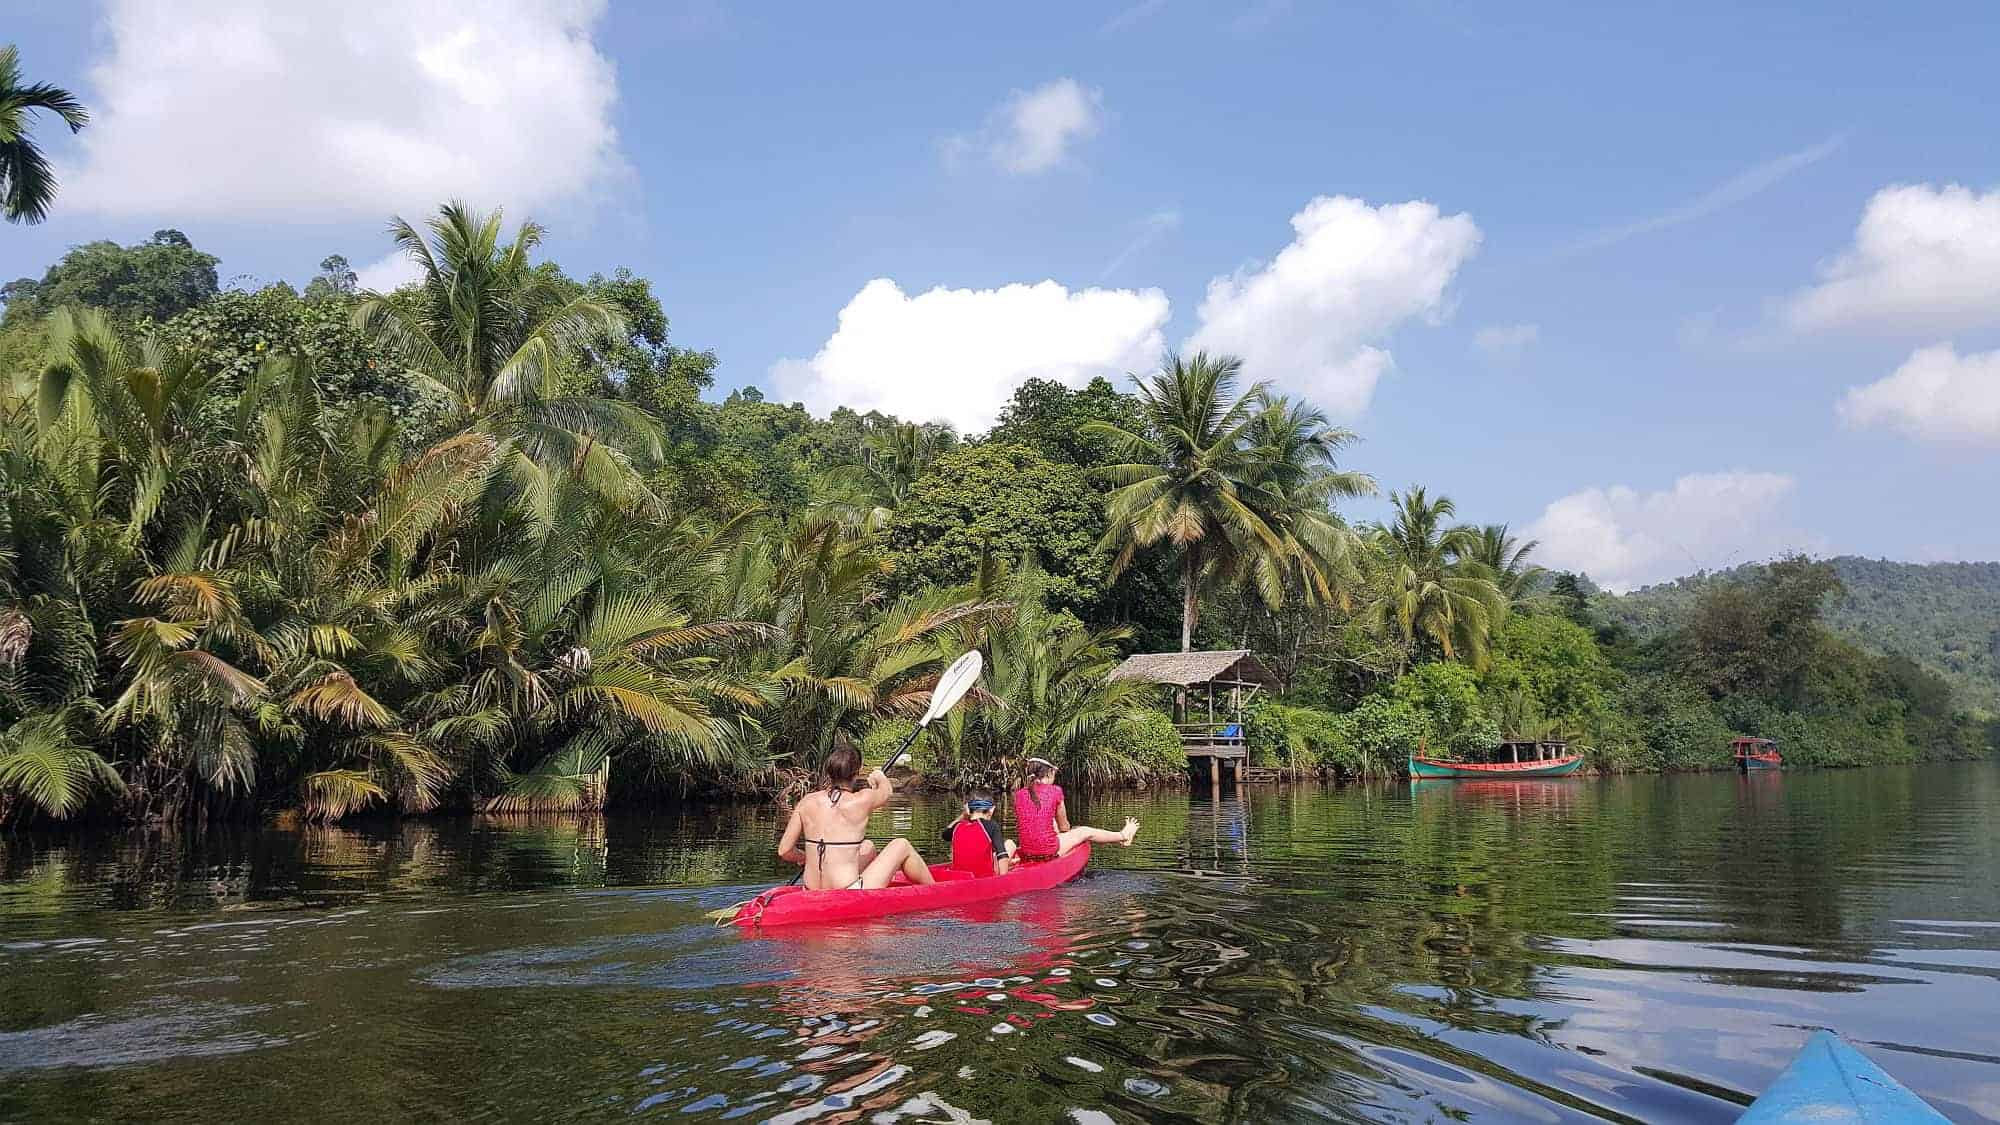 Cambodia Tatai Kayaking with kids